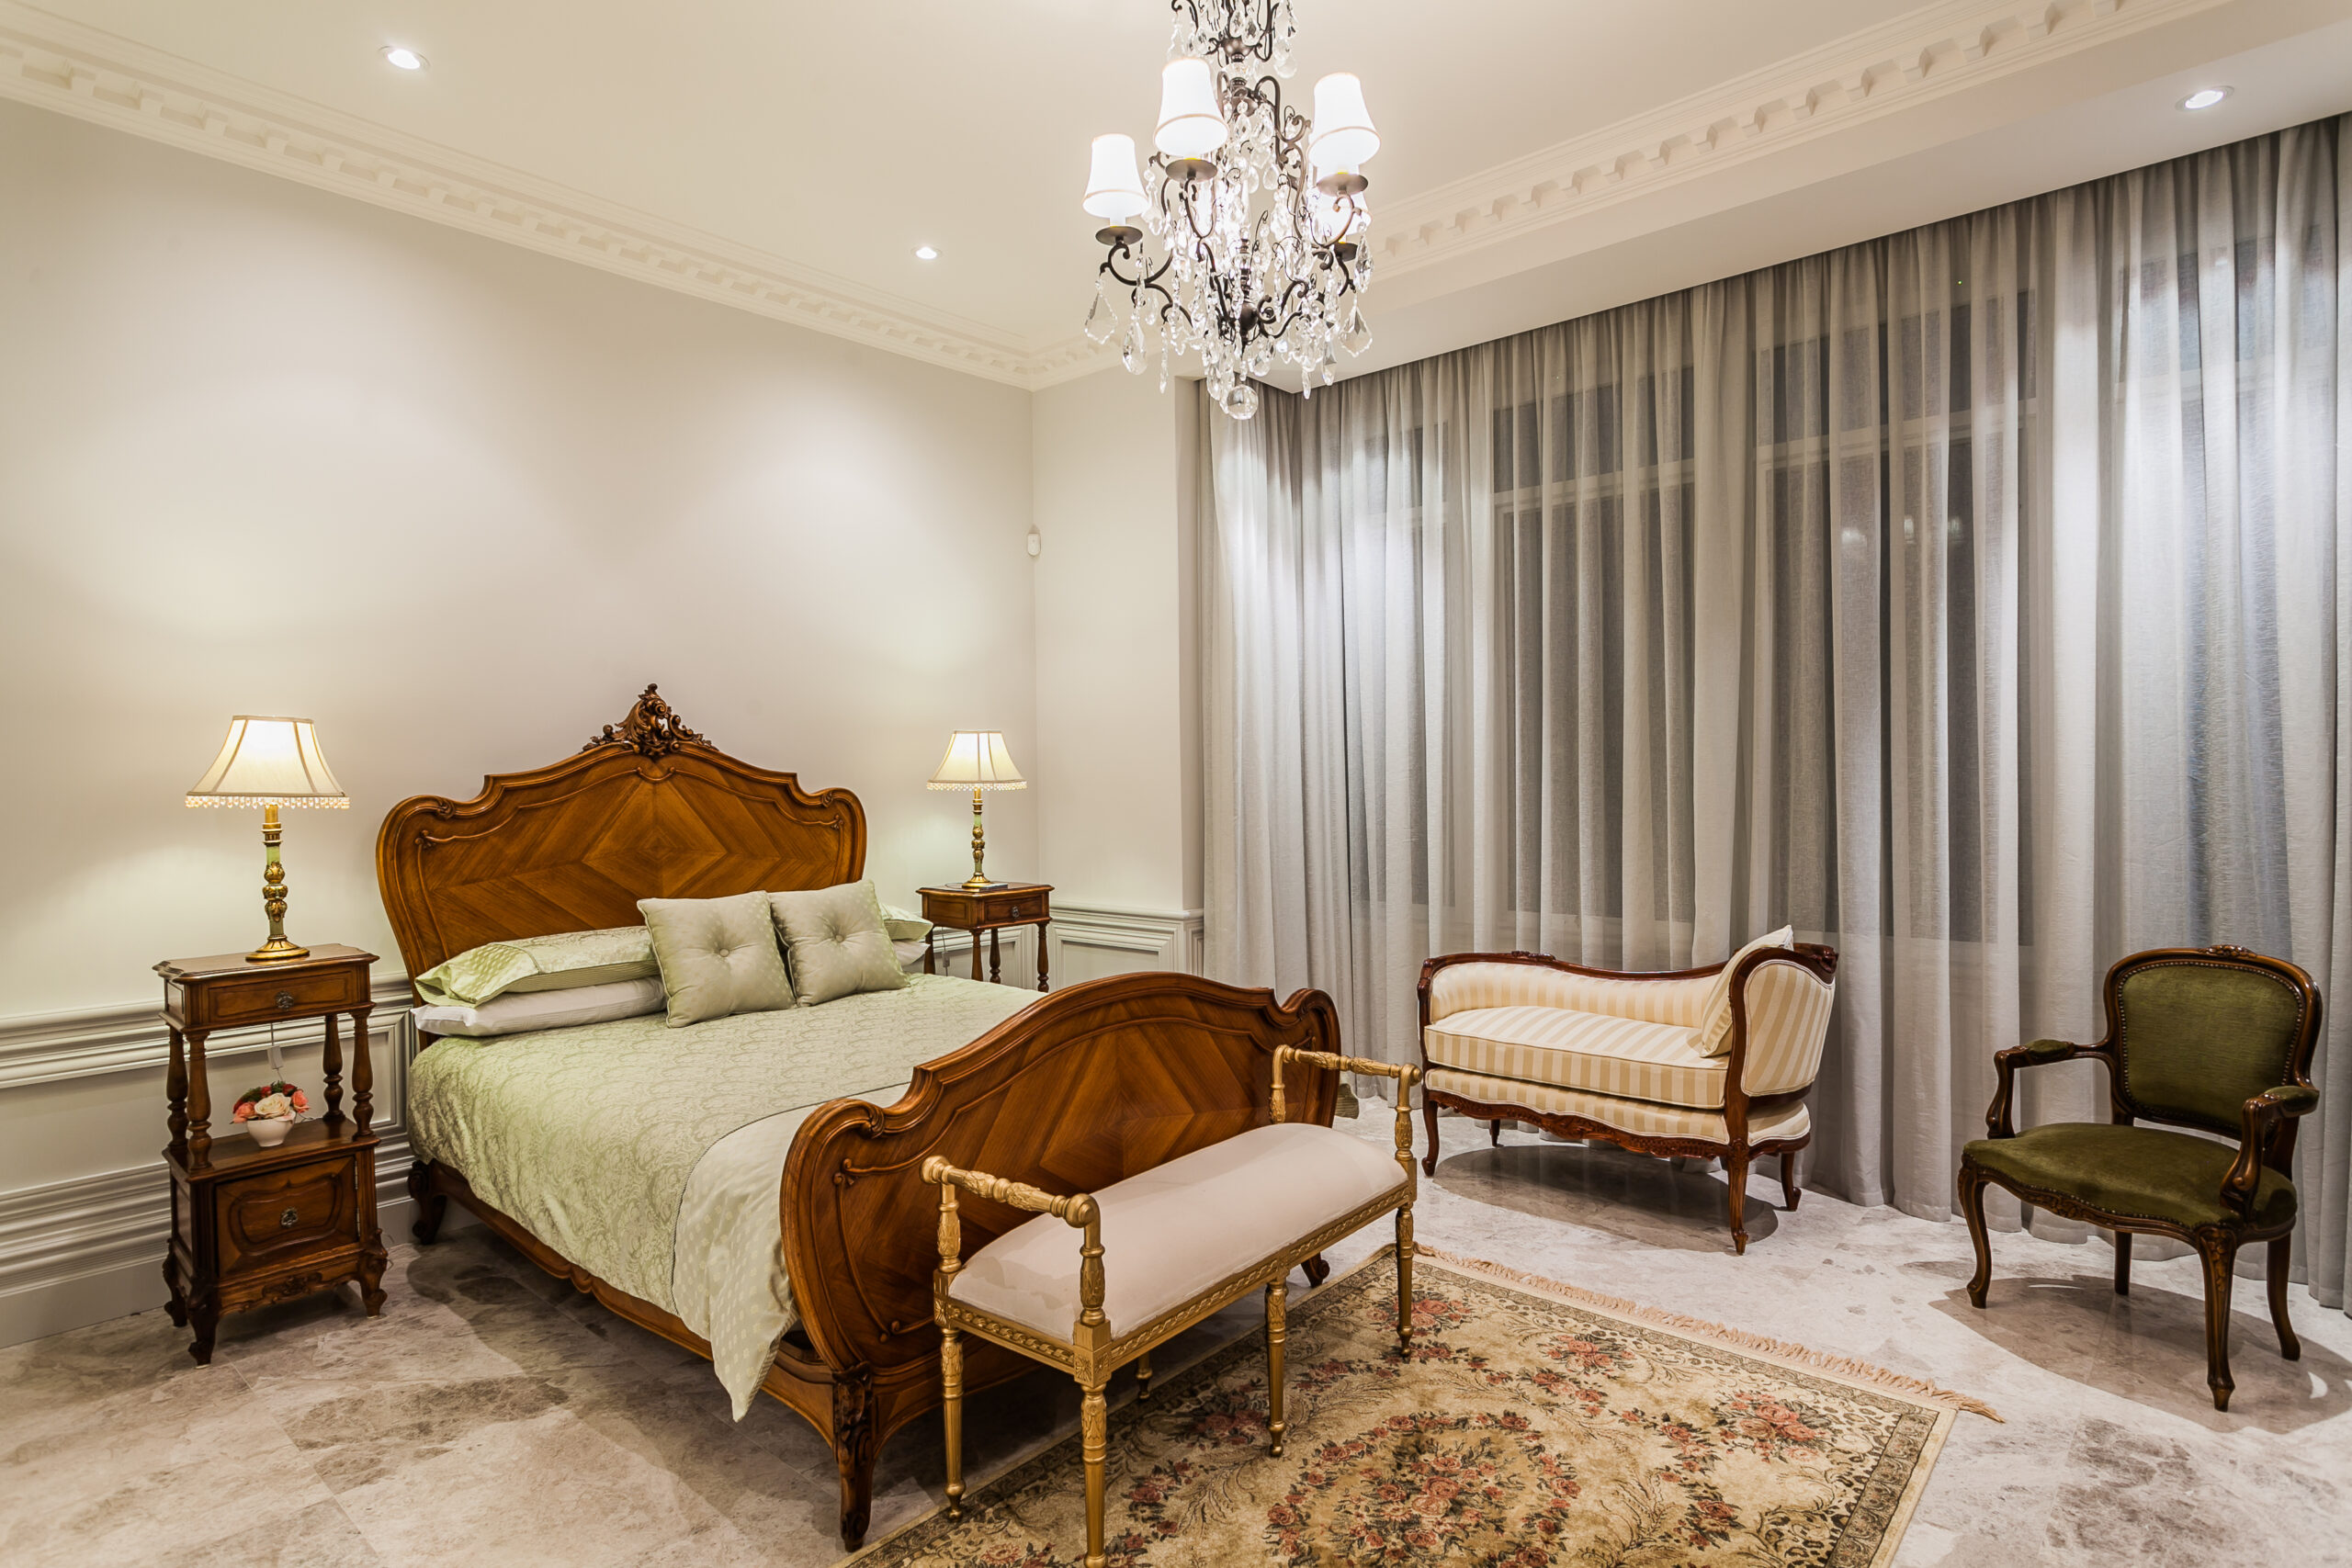 Attadale Residential - Bedroom Style 3